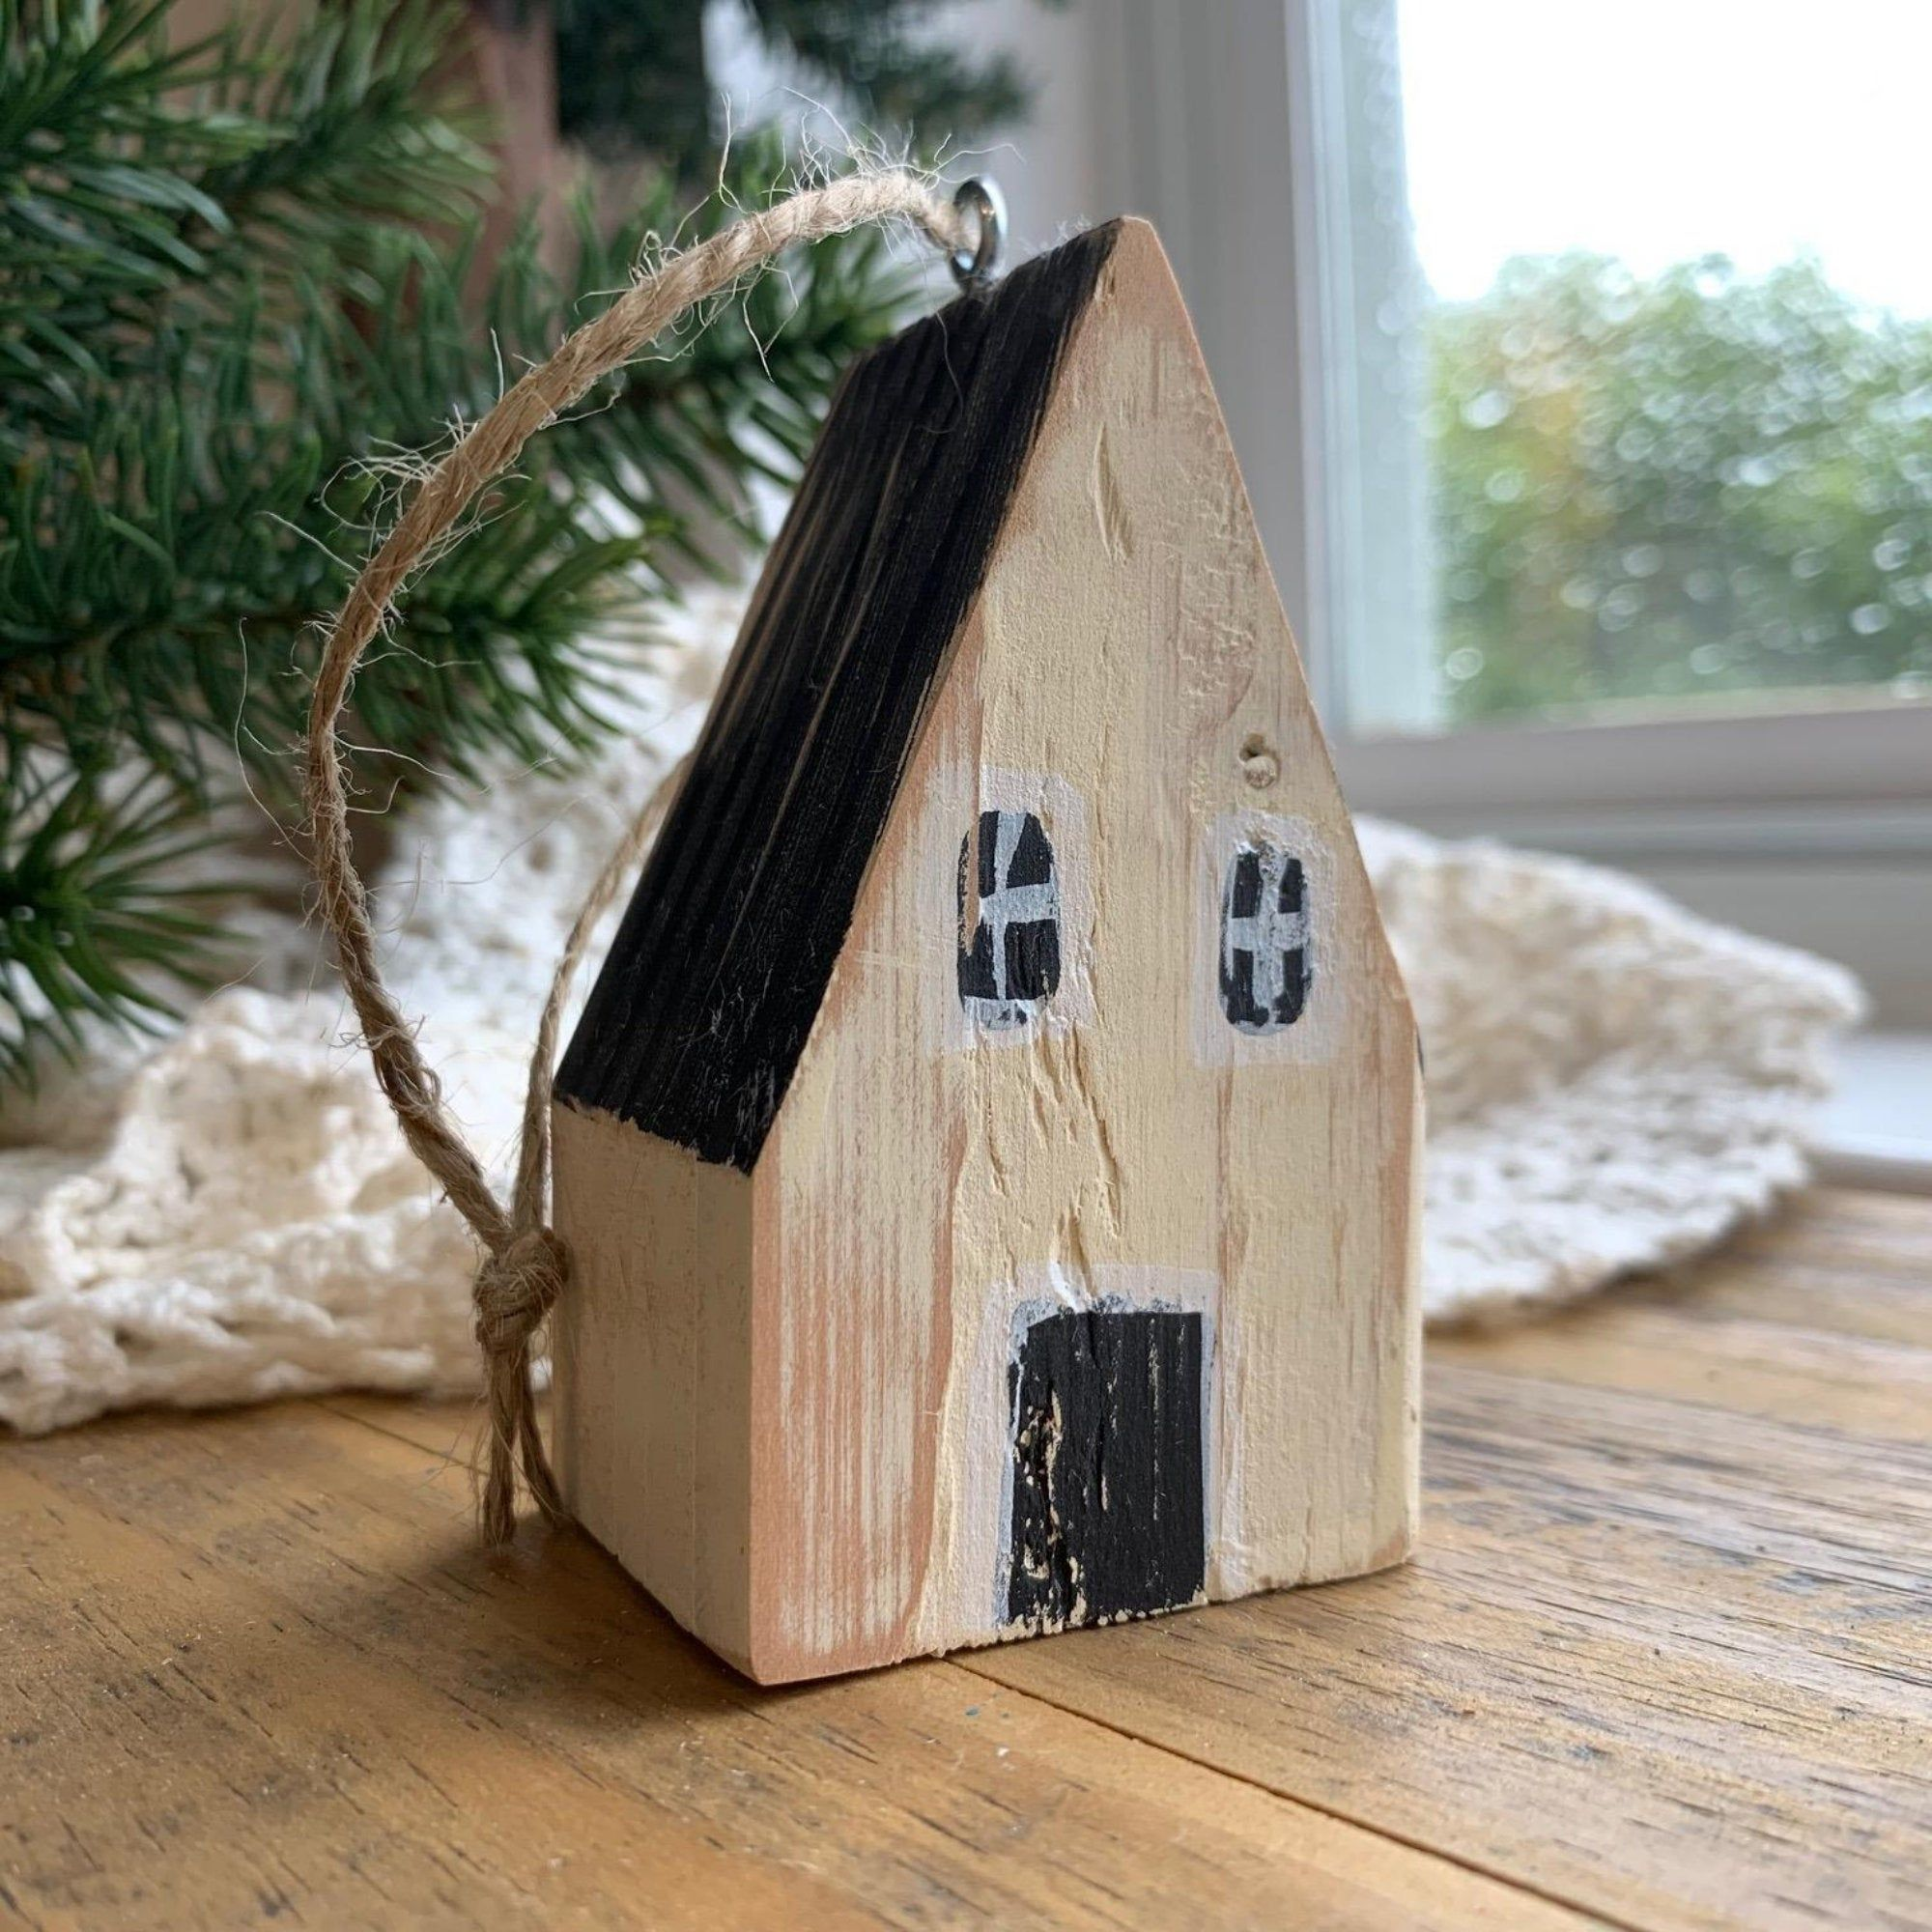 2020 Christmas Ornament The Year We Stayed Home Little Wooden Etsy House Ornaments Christmas Ornaments Painted Driftwood